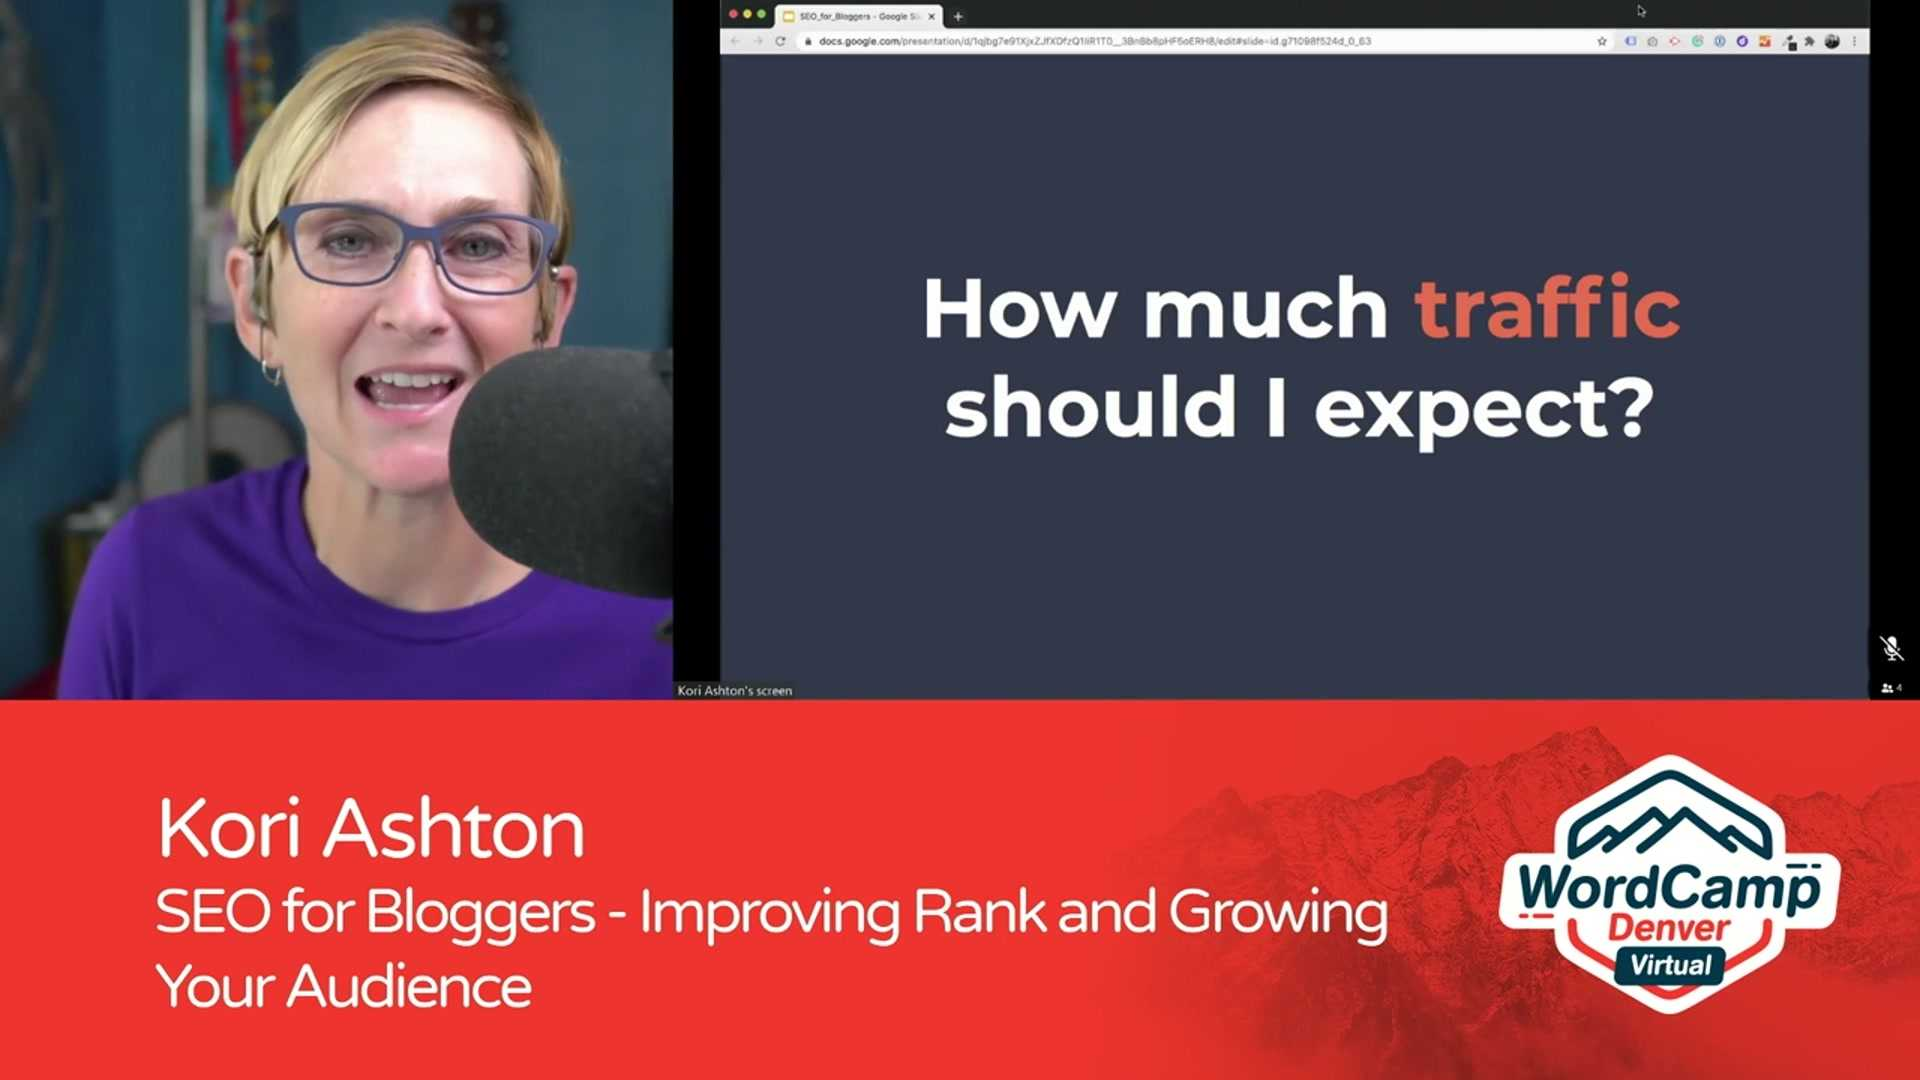 Kori Ashton: SEO for Bloggers - Improving Rank and Growing Your Audience